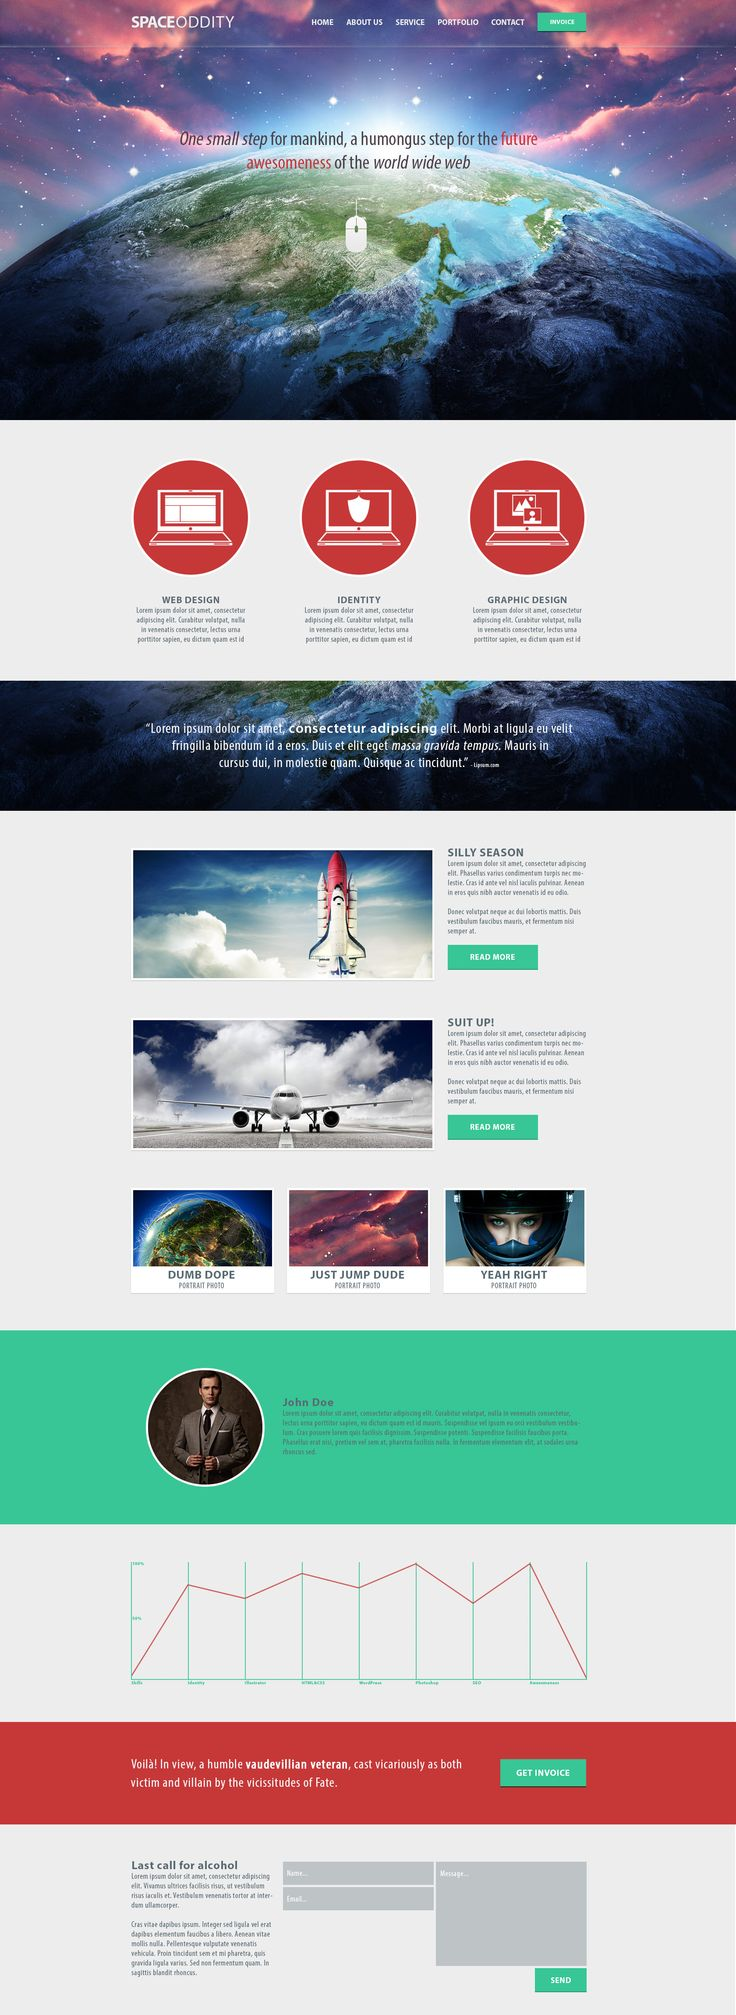 Fancypancy WordPresstheme